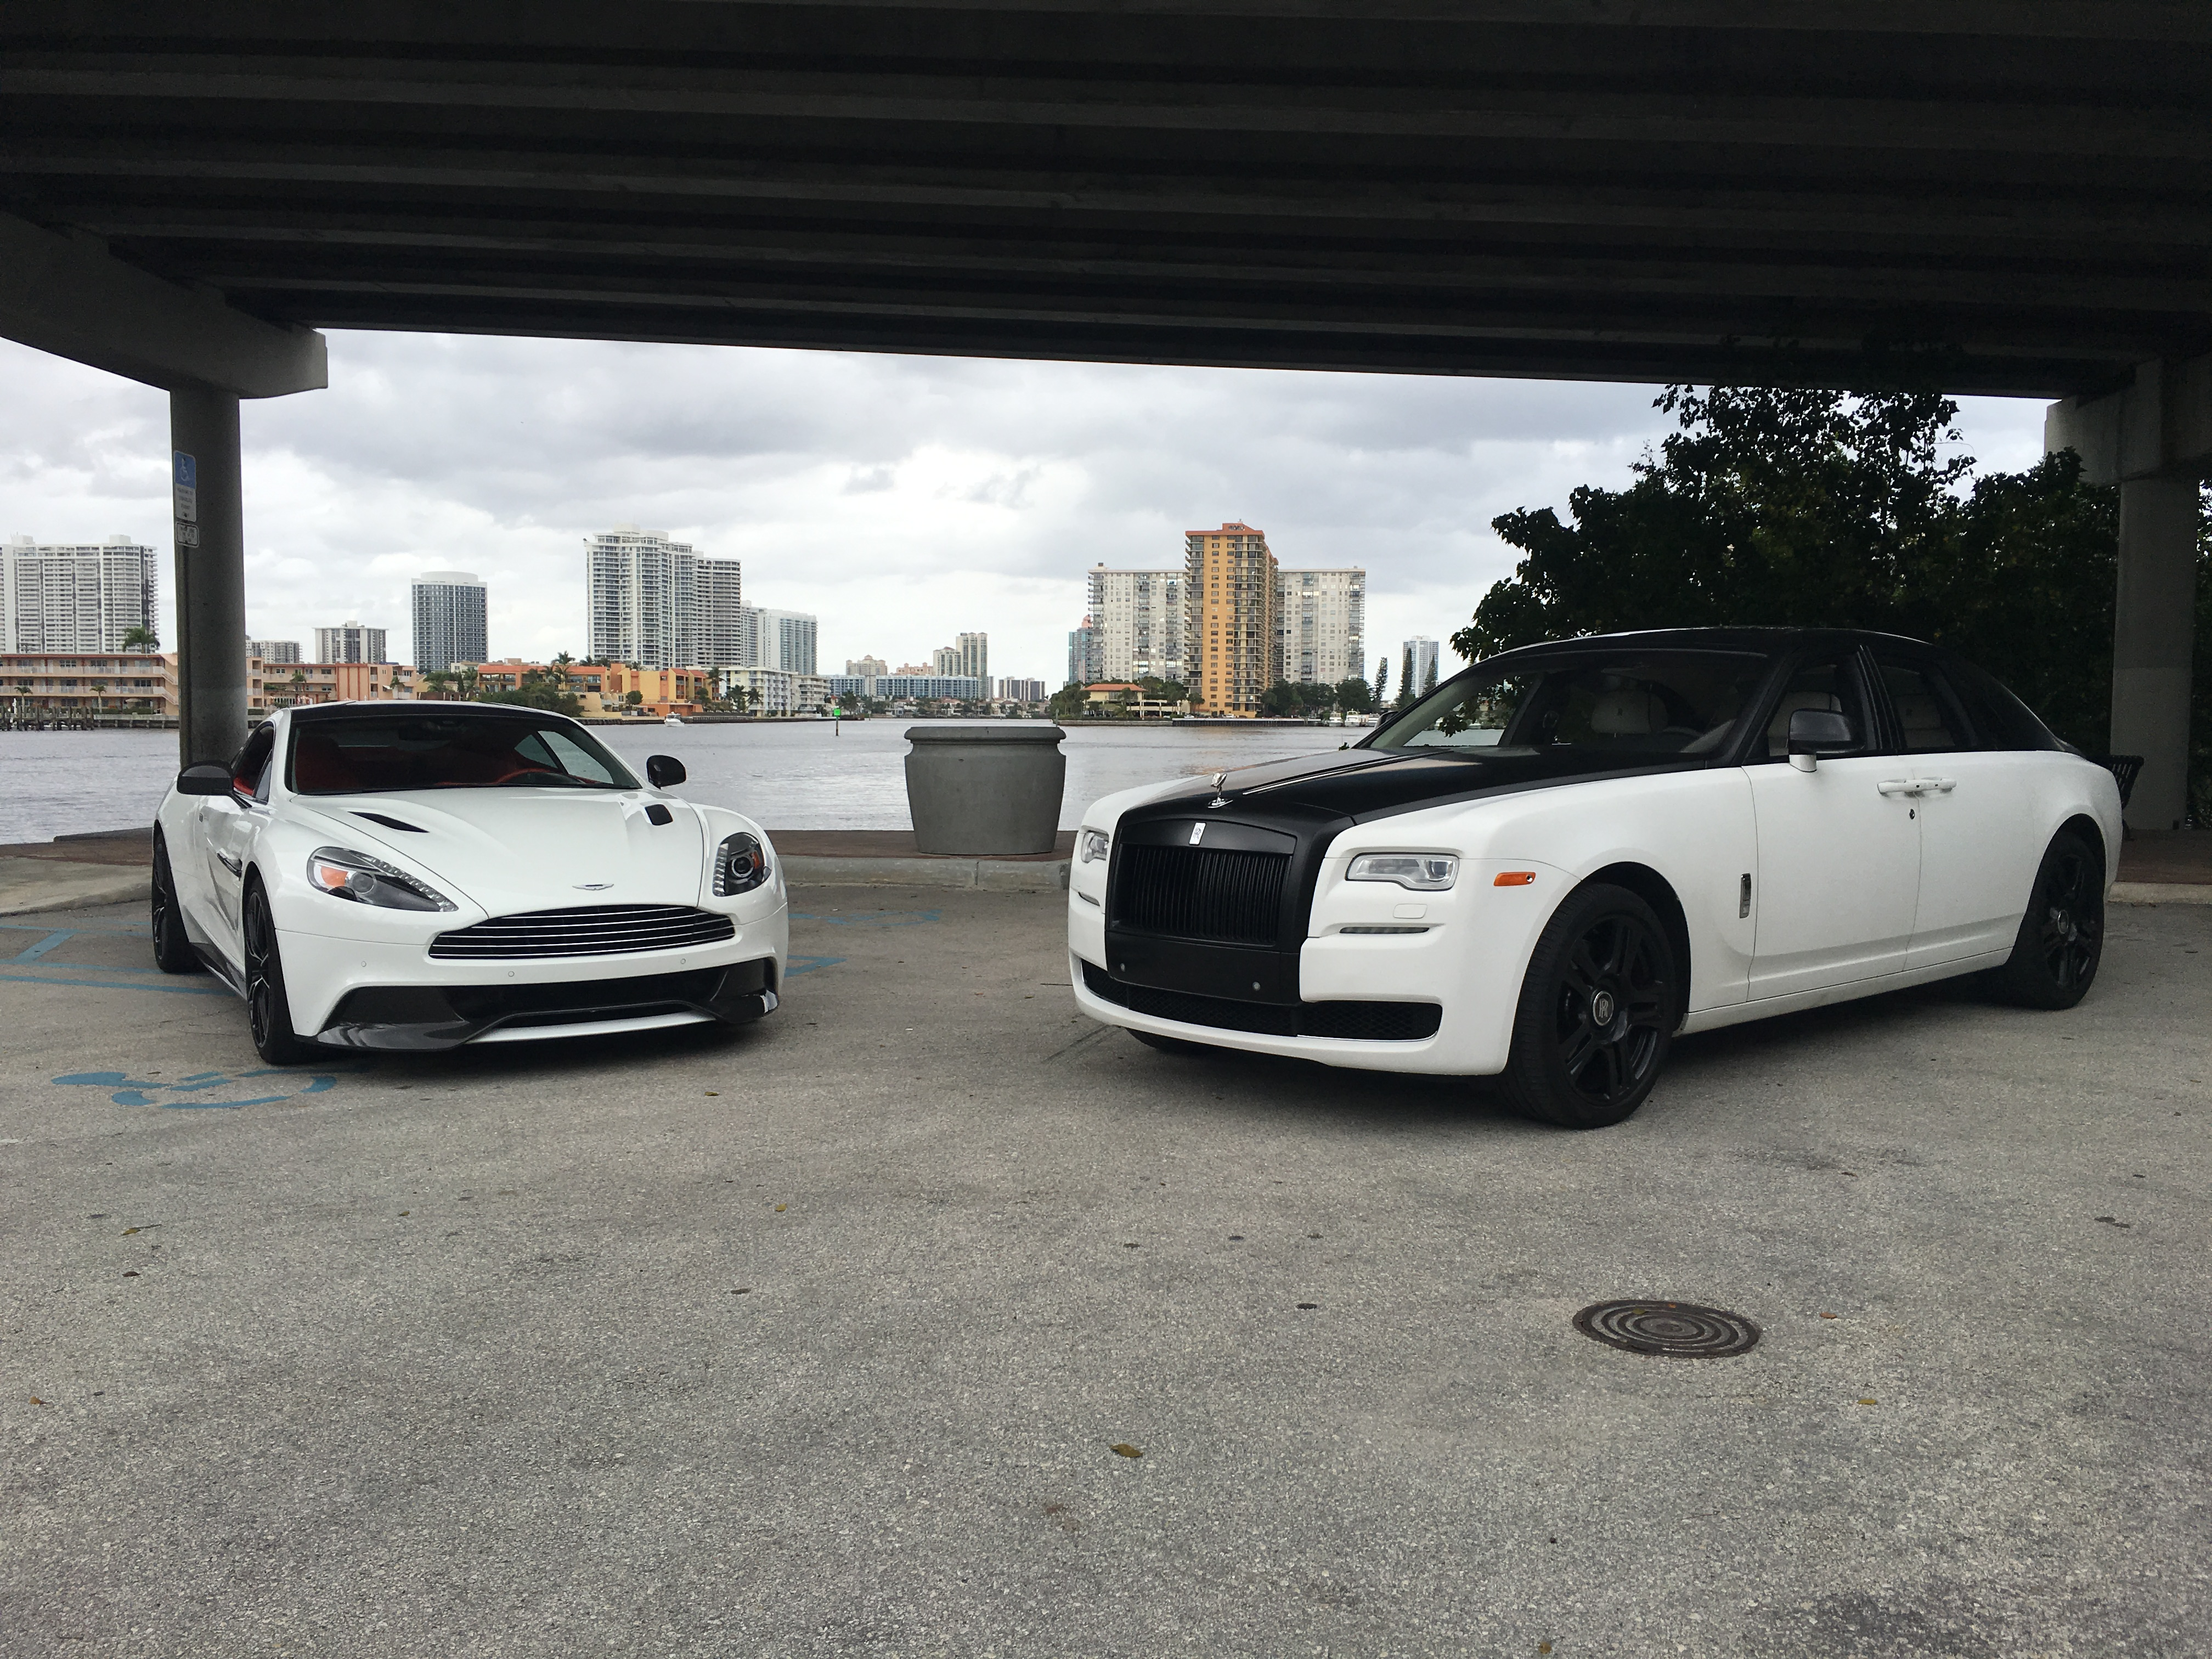 Miami Luxury Car Rental >> Indulge Yourself With A Pristine Luxury Car From Vice City Vip